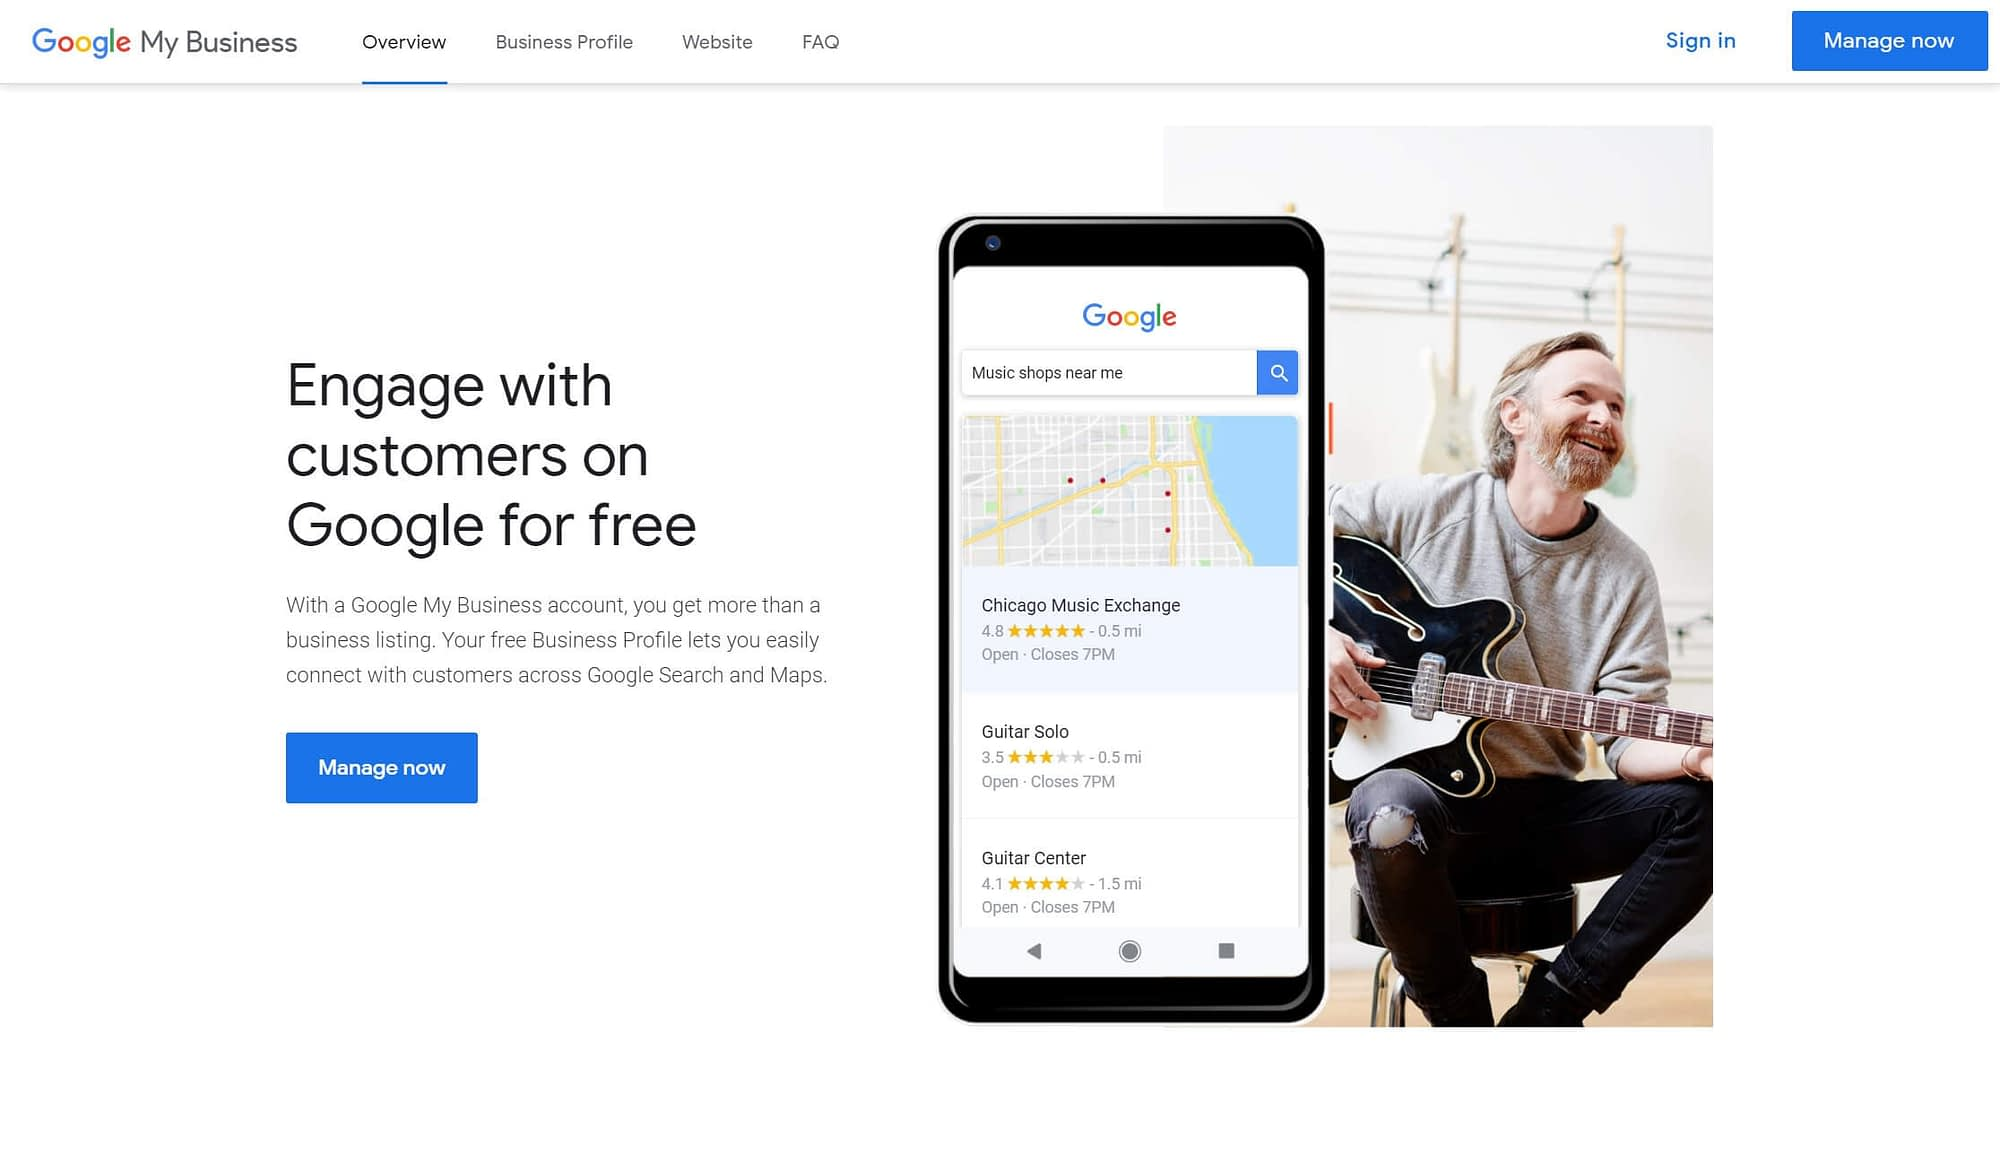 The Google Business home page.